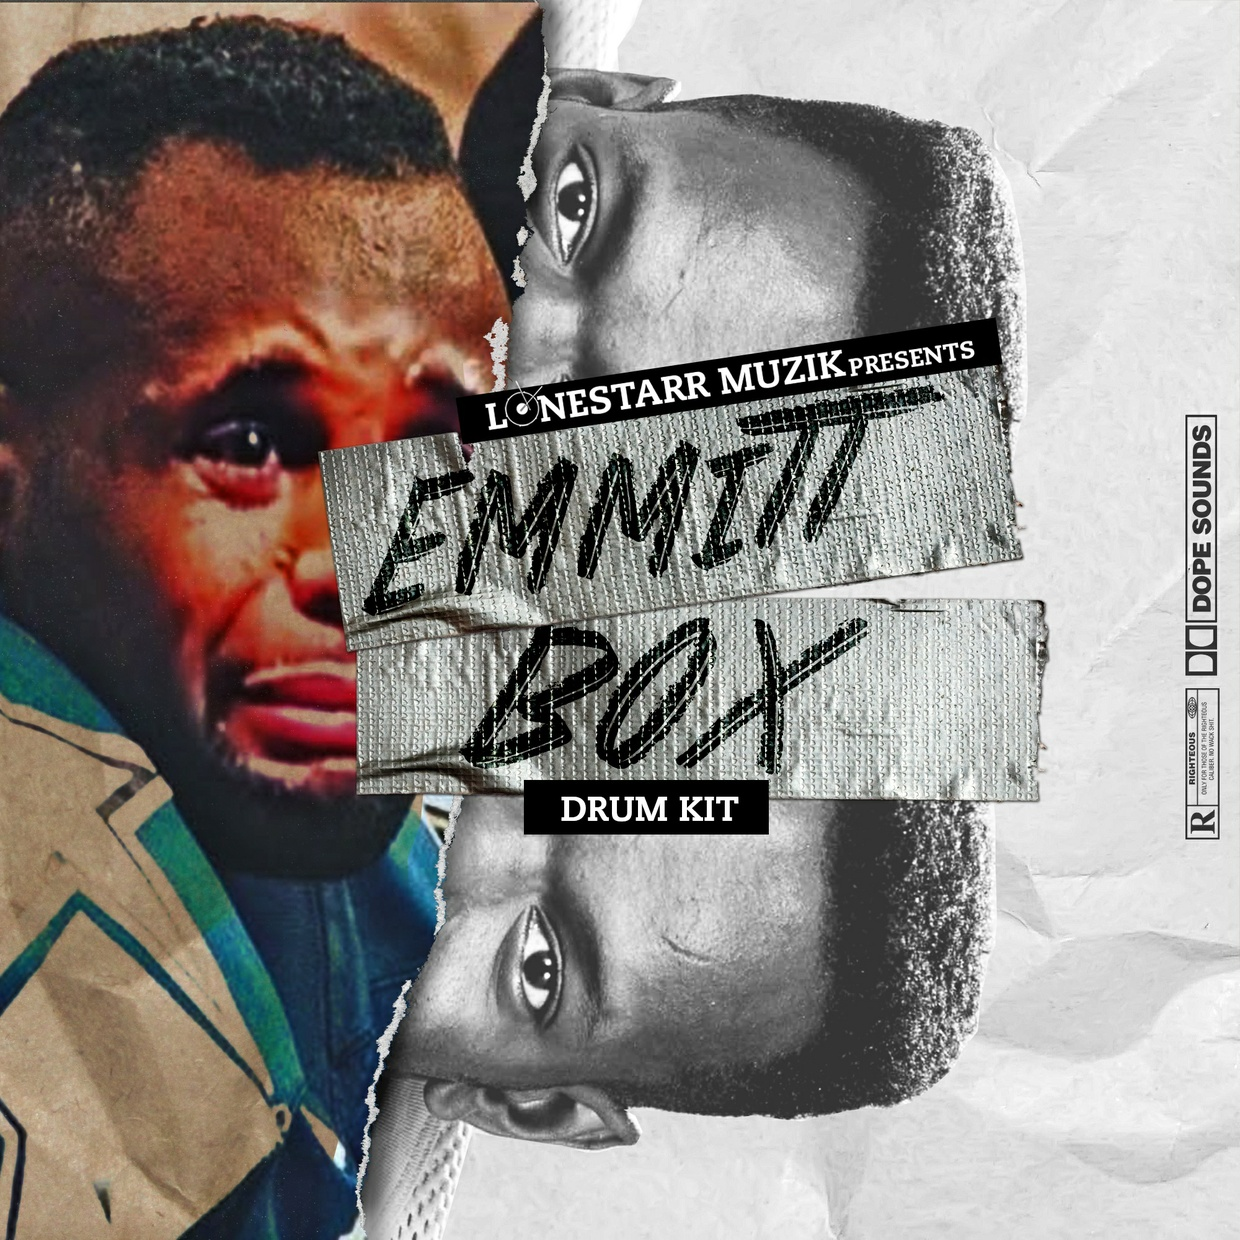 LONESTARRMUZIK - EMMITT BOX DRUM KIT